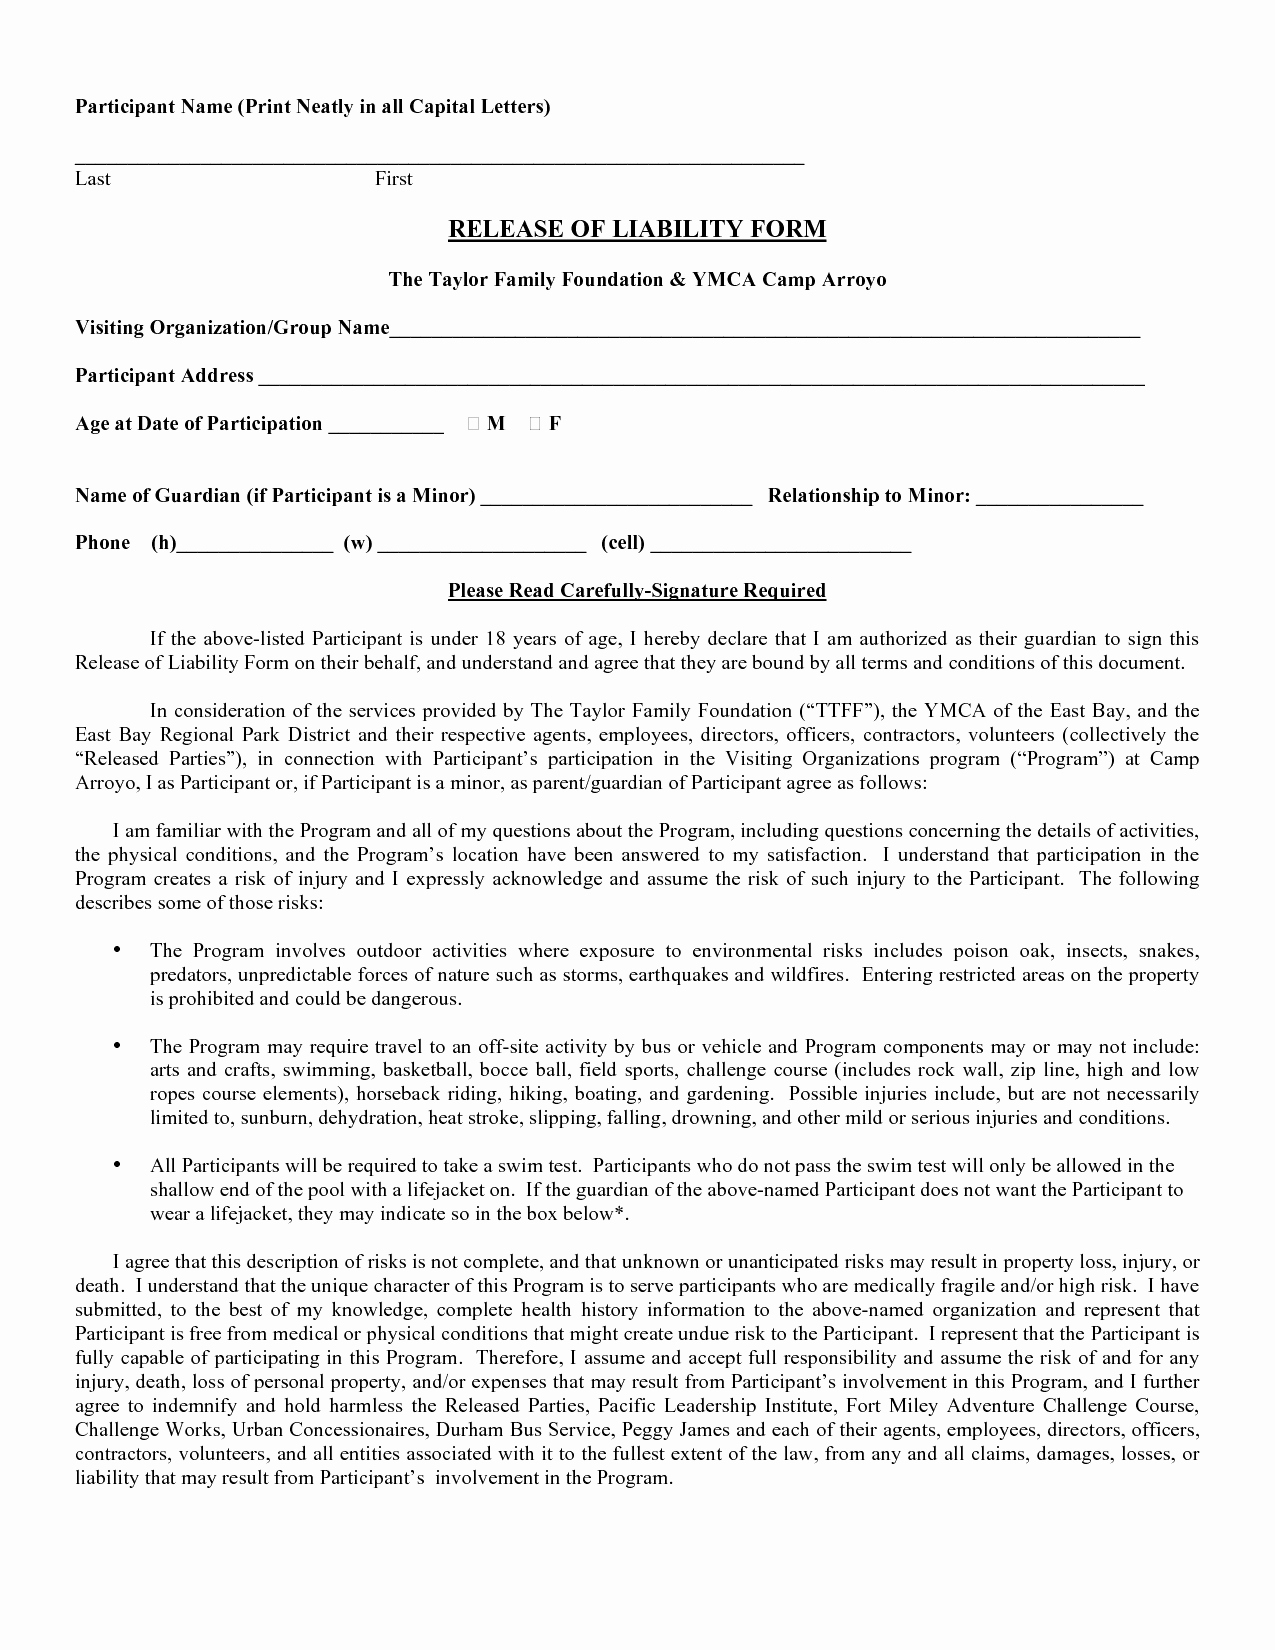 Free Printable Legal Forms - Classy World - Free Printable Legal Documents